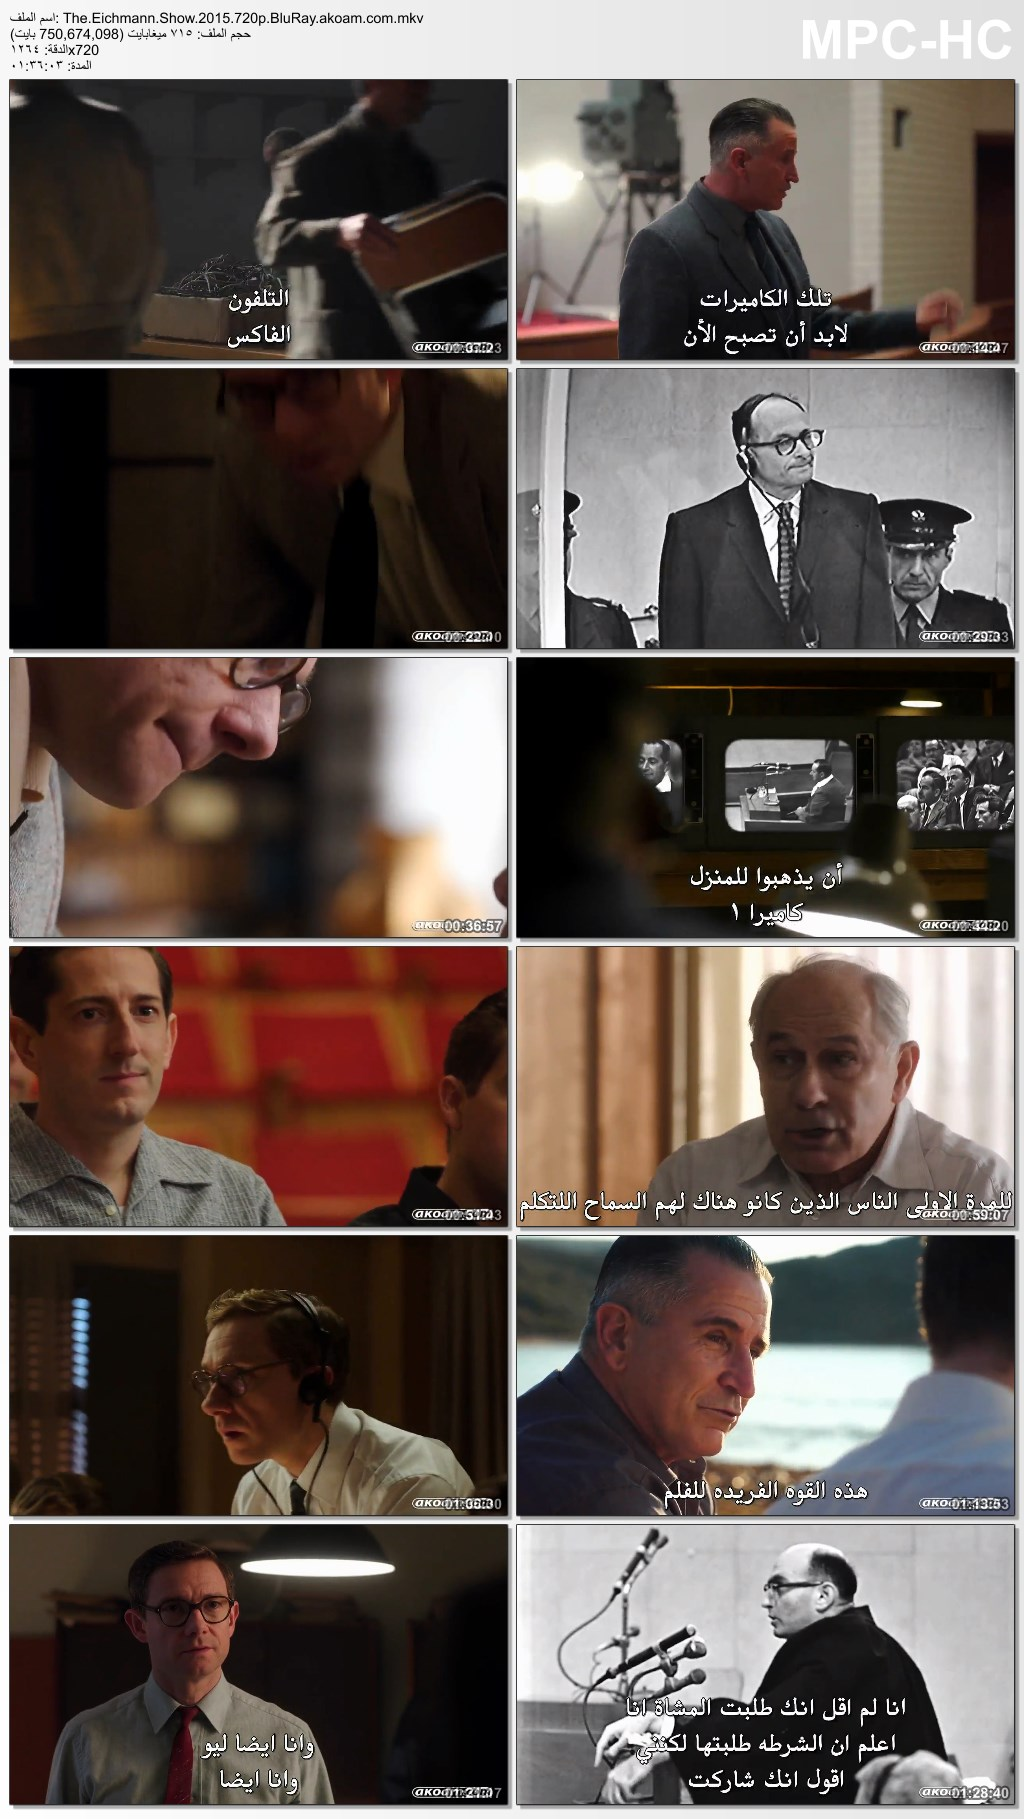 The Eichmann Show,The Eichmann Show 2015,Eichmann,Show,الدراما,Martin Freeman,Anthony LaPaglia